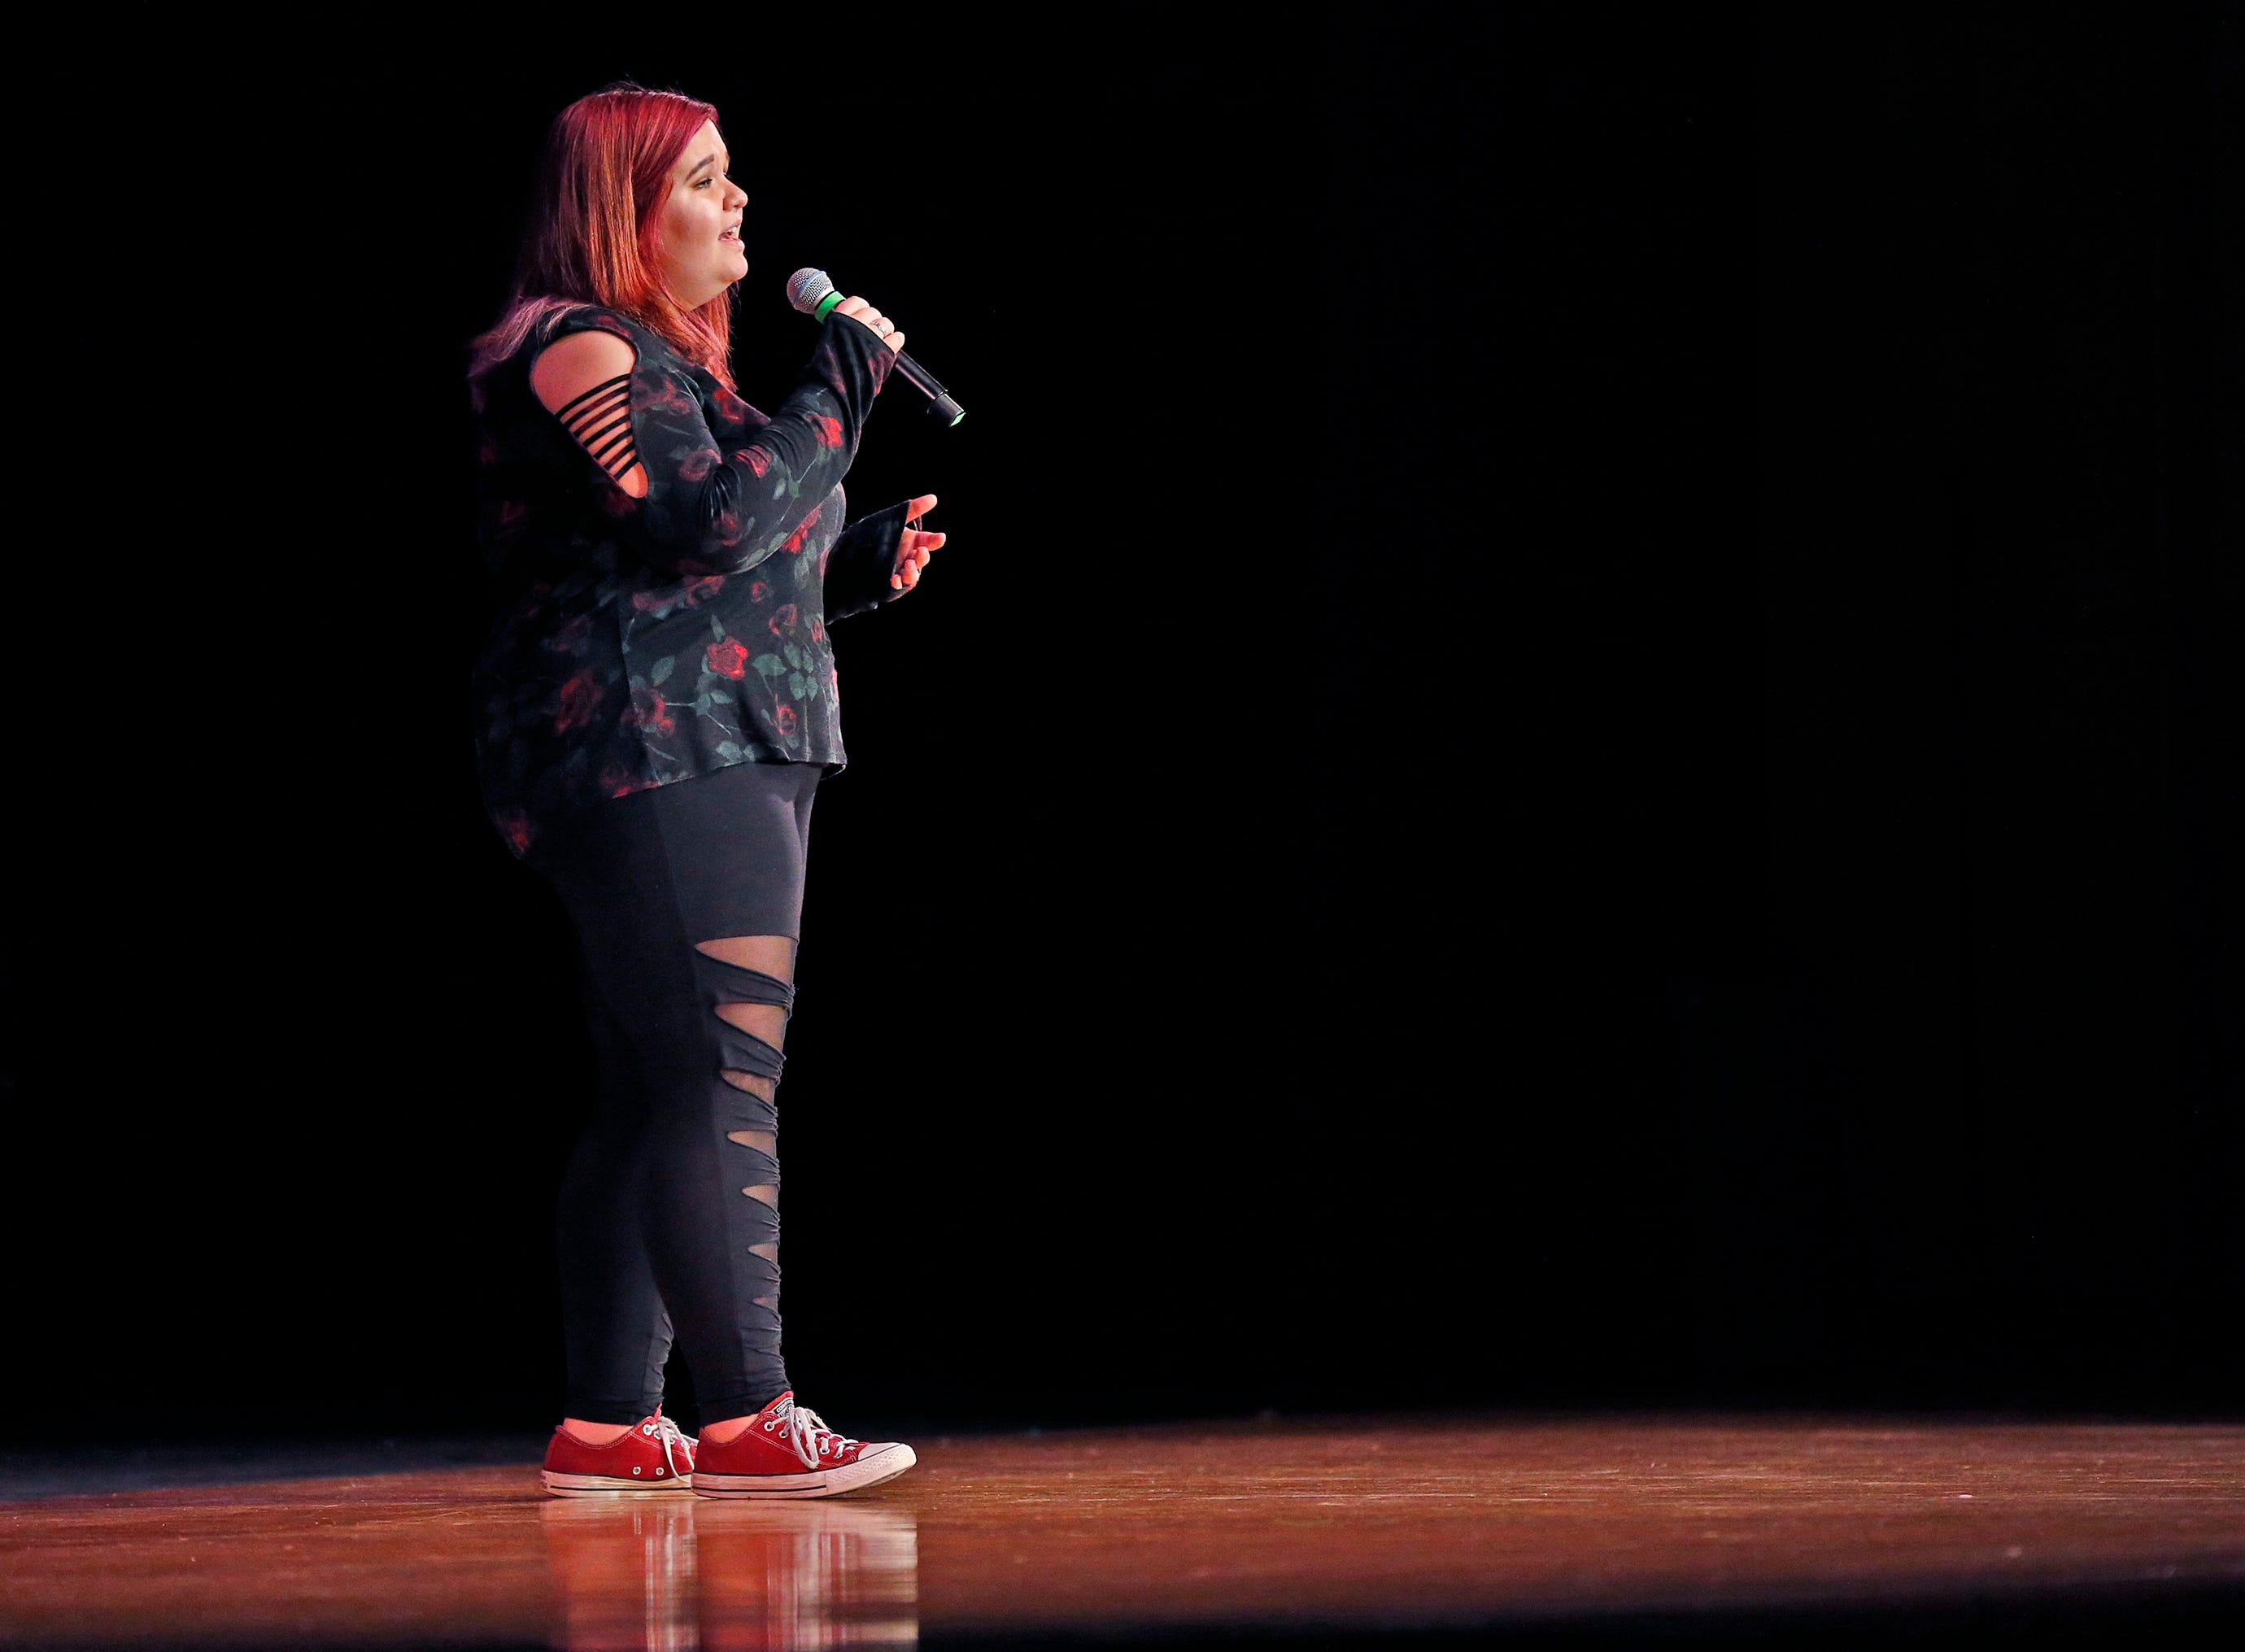 """Haille Krohn sings """"Somewhere Only We Know"""" during the 2018 Rocket Review to benefit the South Milwaukee High School Theatre Company at the Performing Arts Center on Dec. 20."""